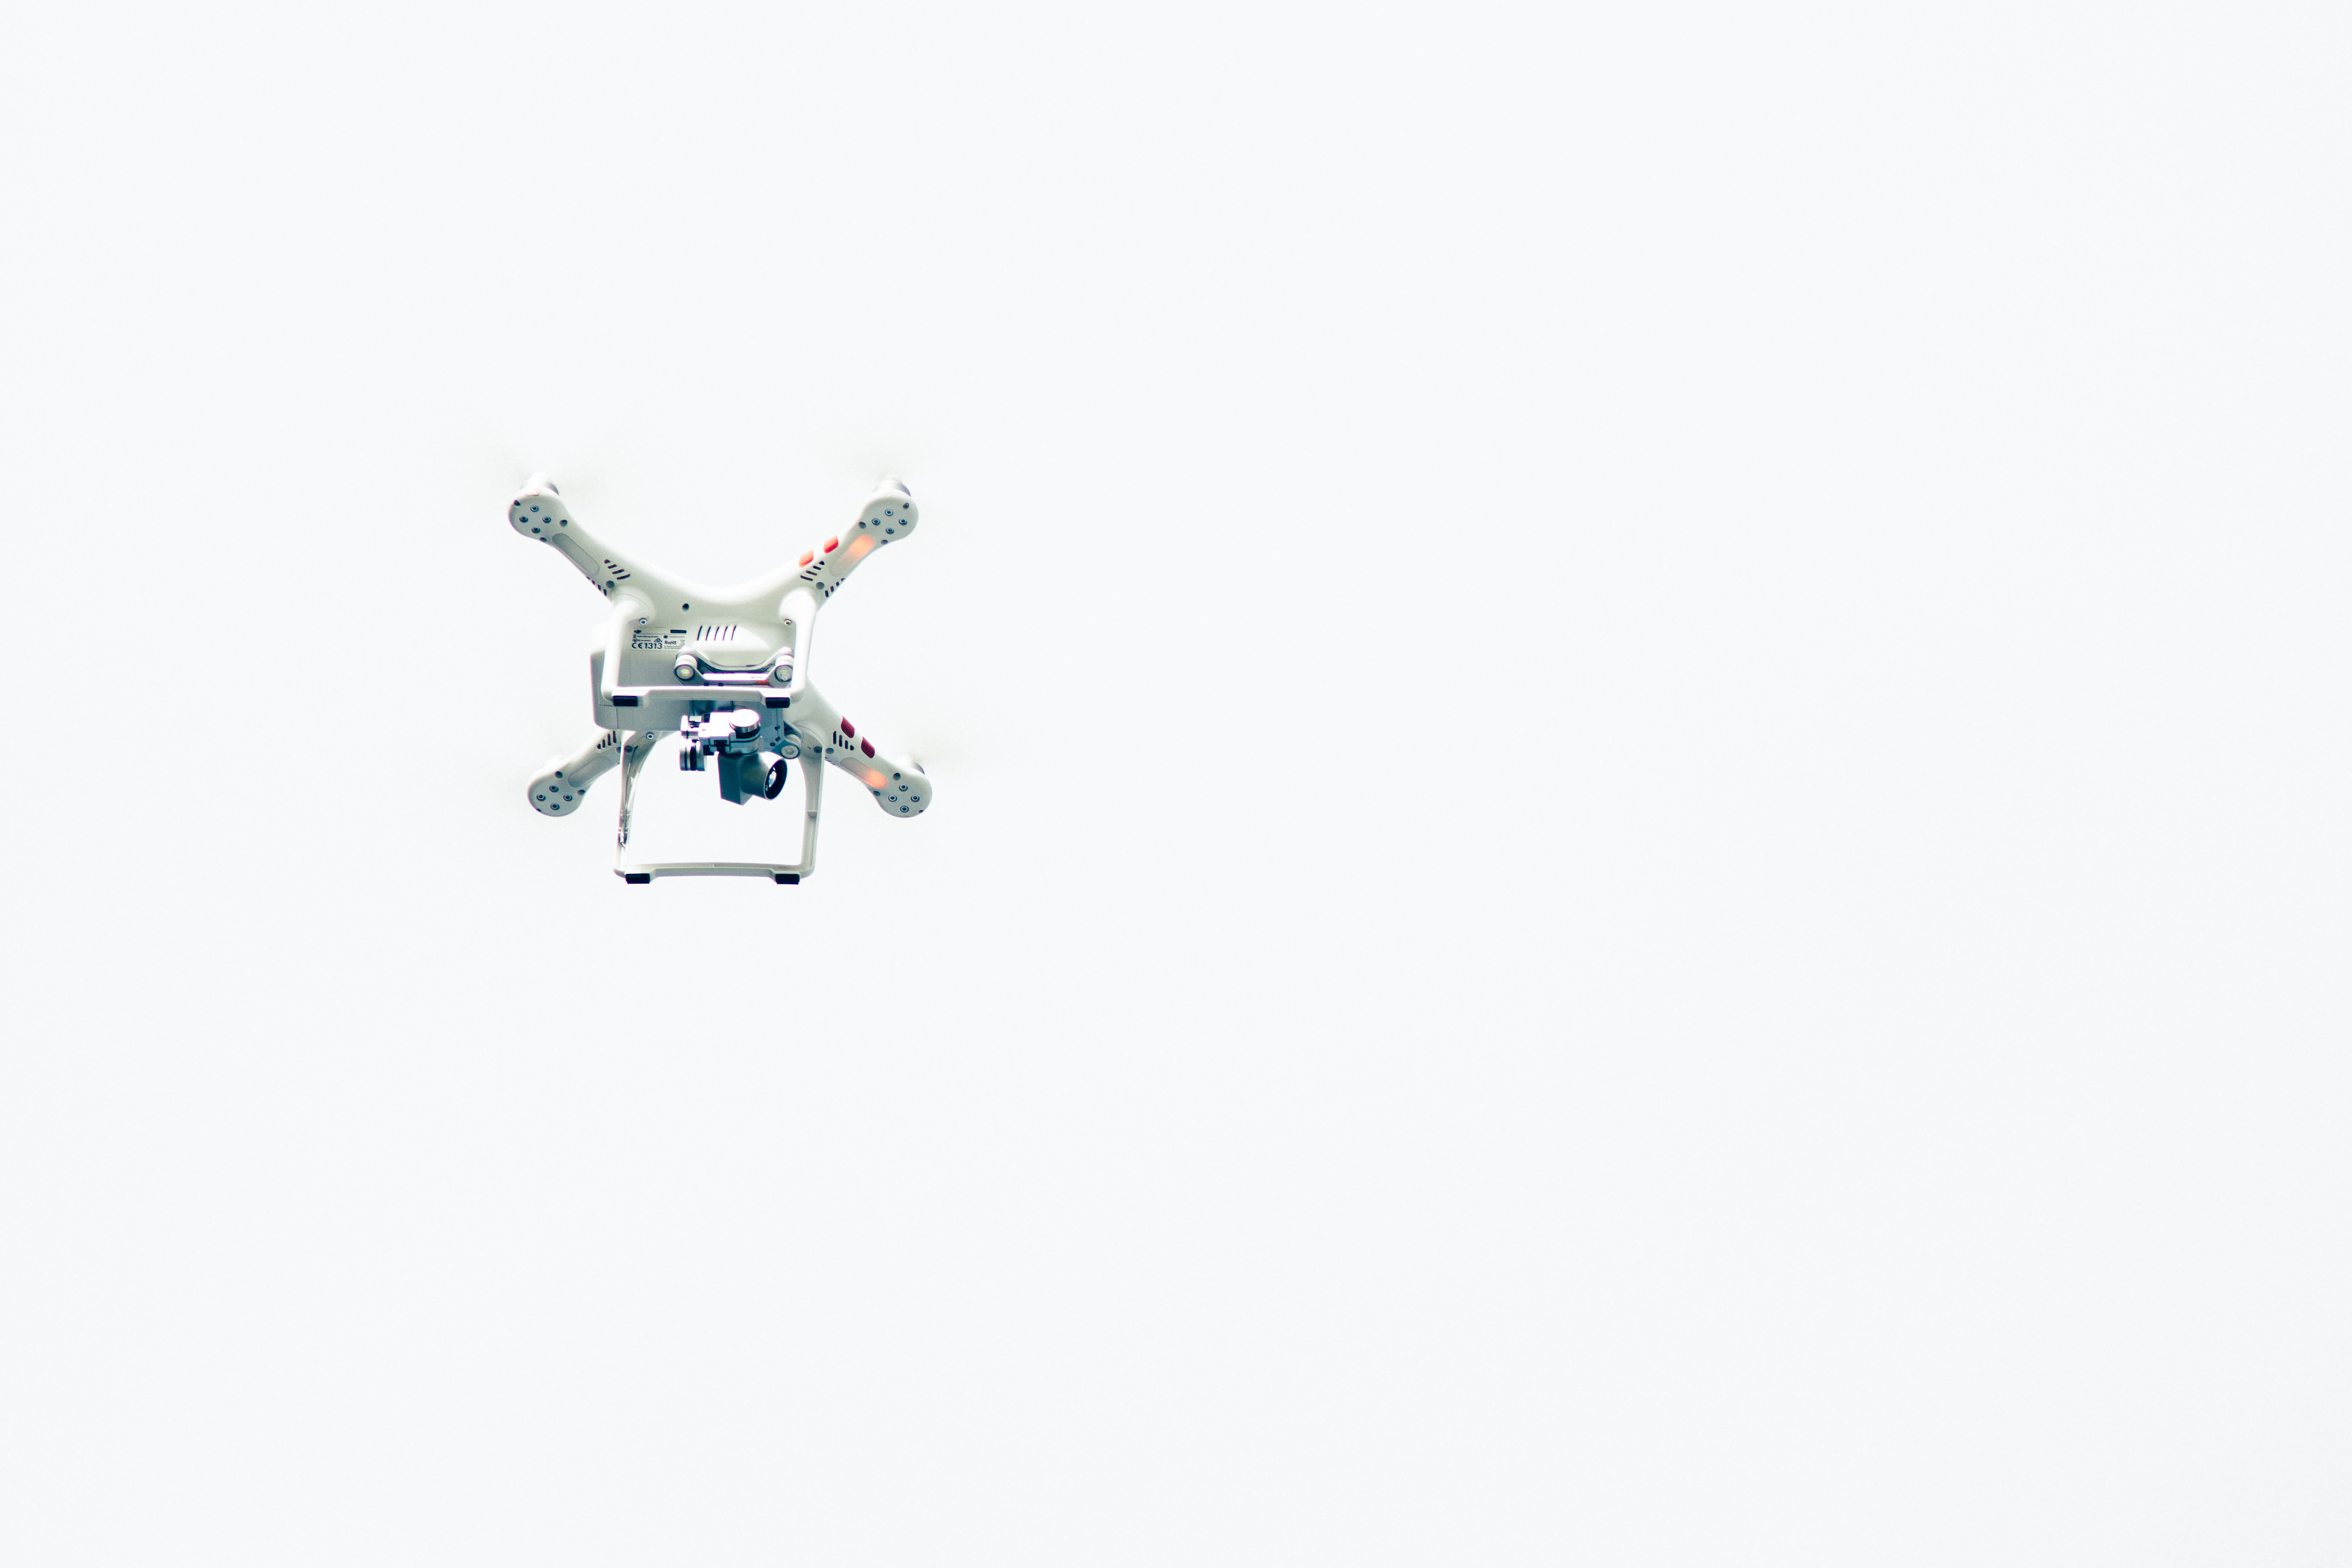 Drone flying against the backdrop of a cloudy sky